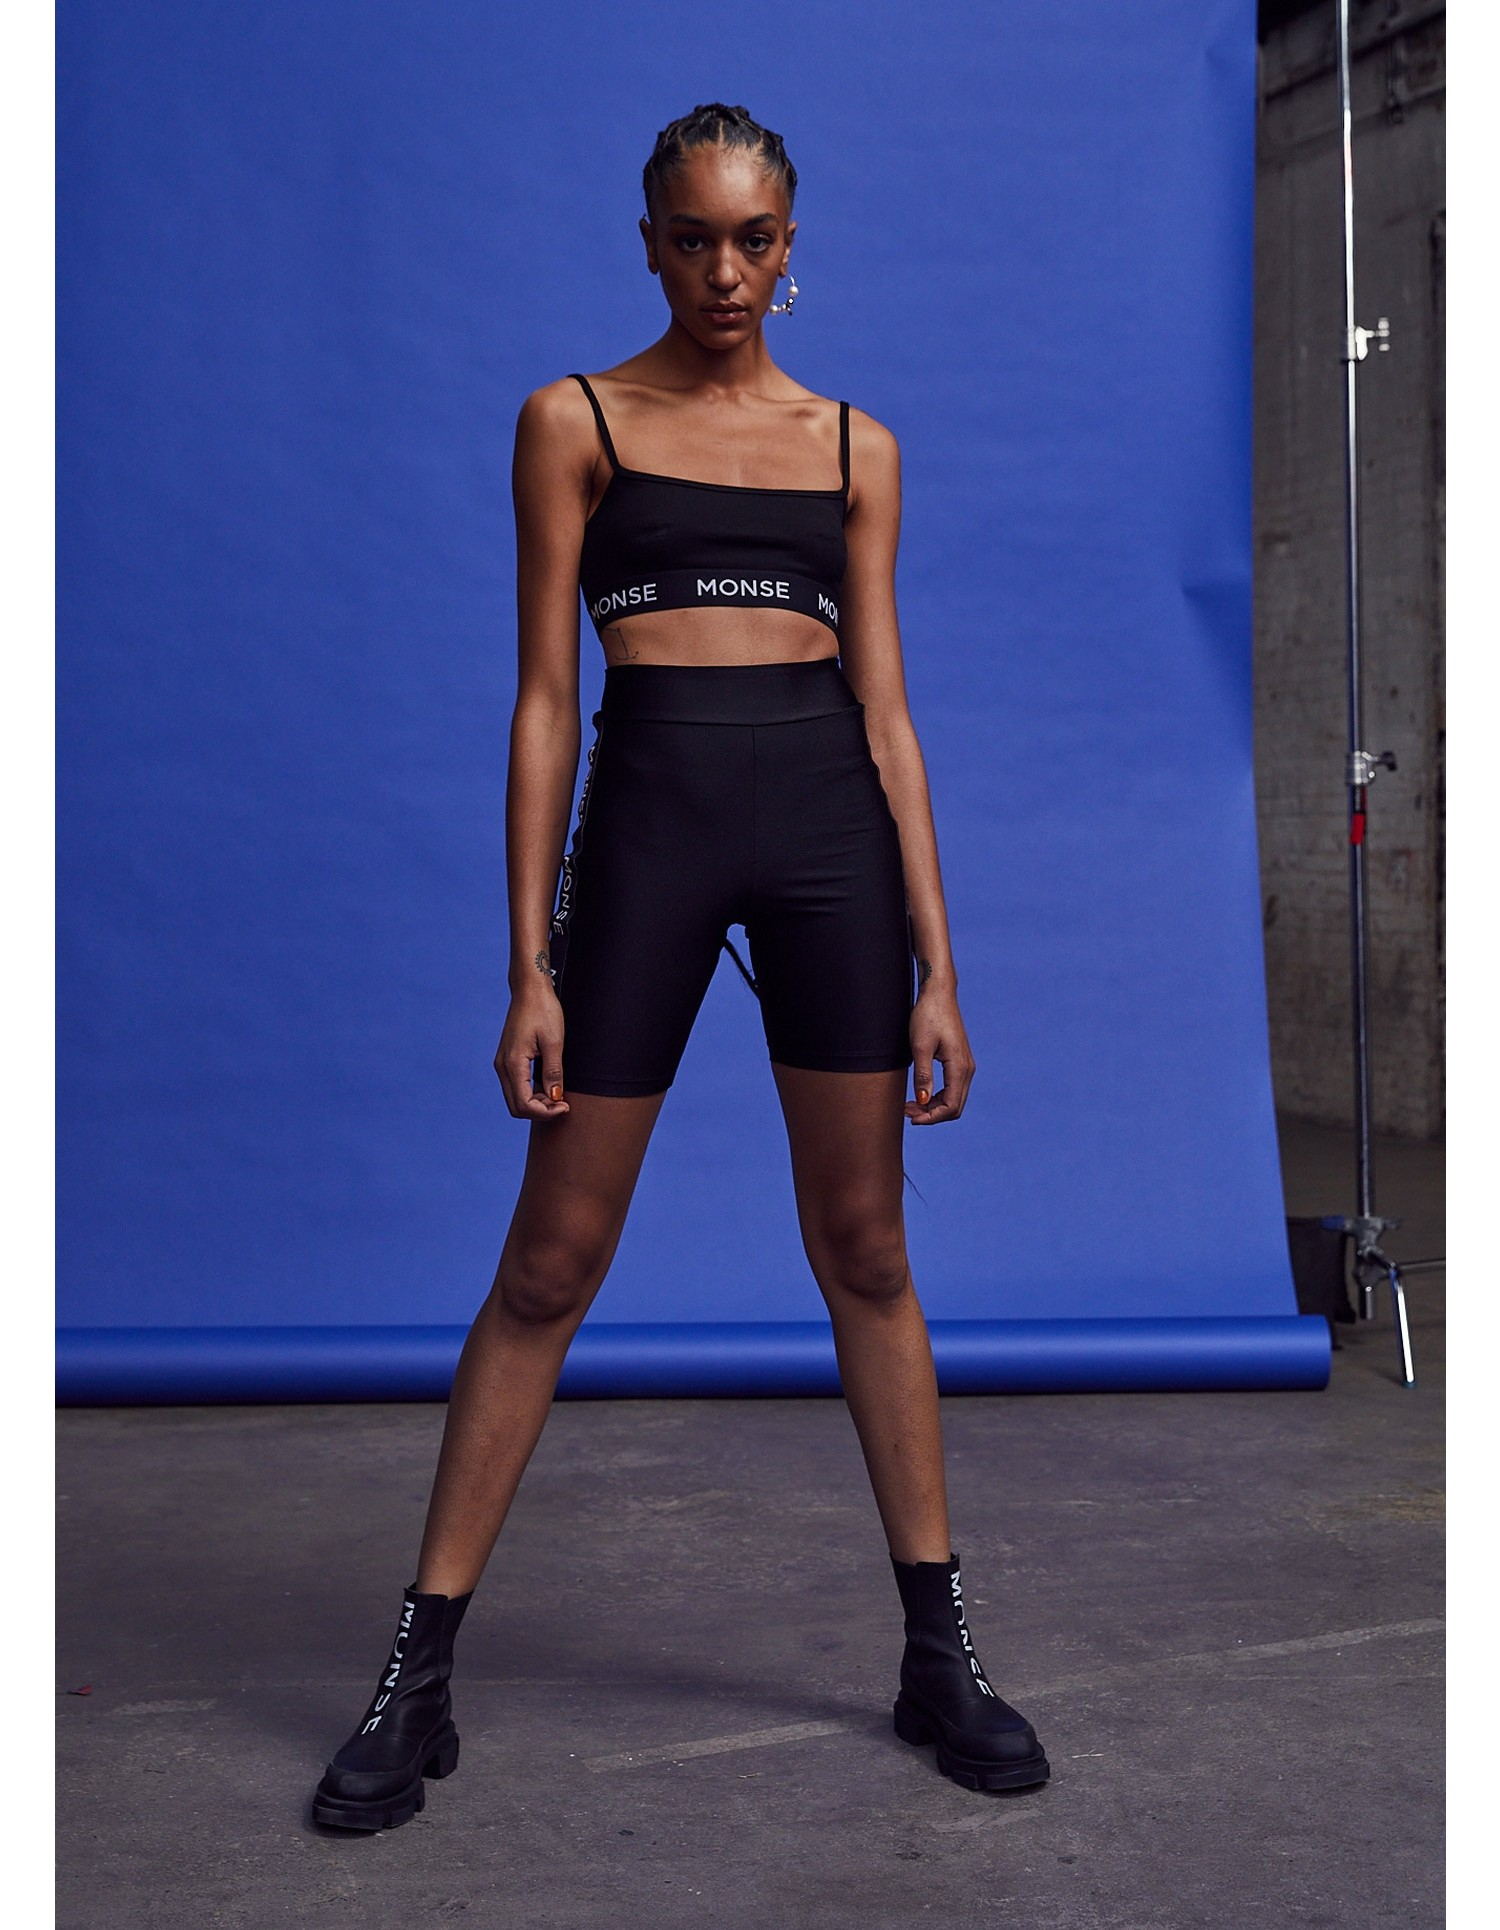 MONSE Bra Top in Black on Model No Background Front